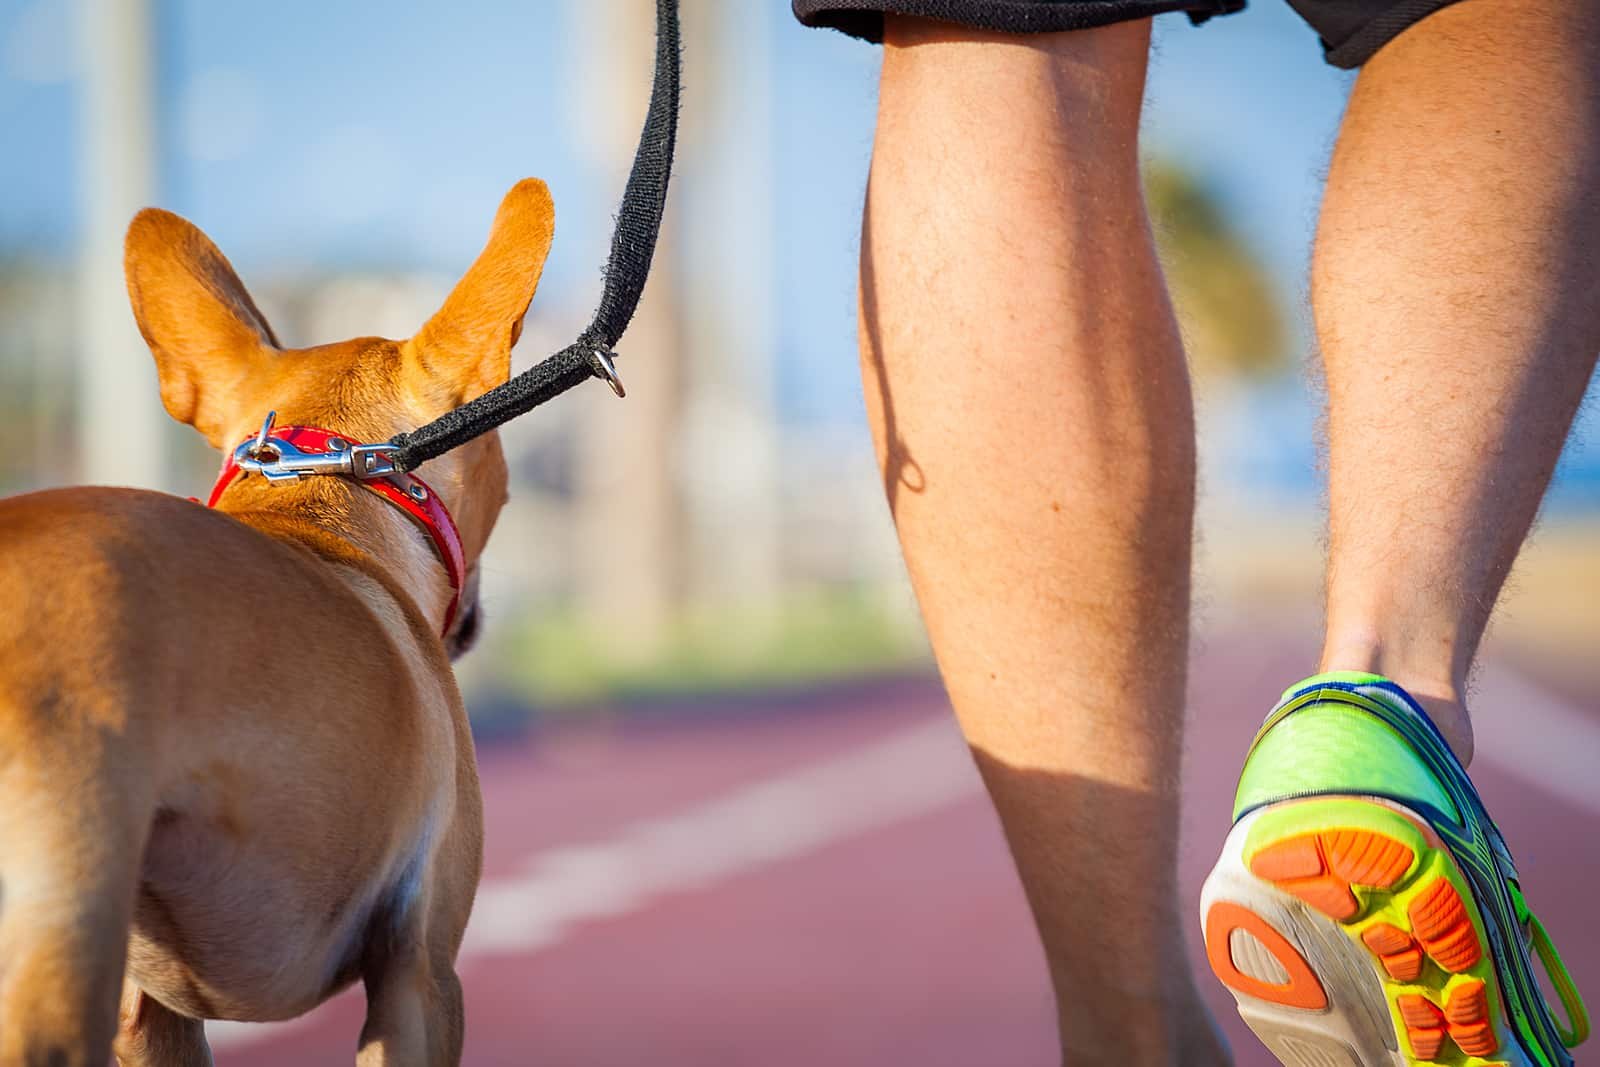 A chihuahua dog walking on the track with his owner